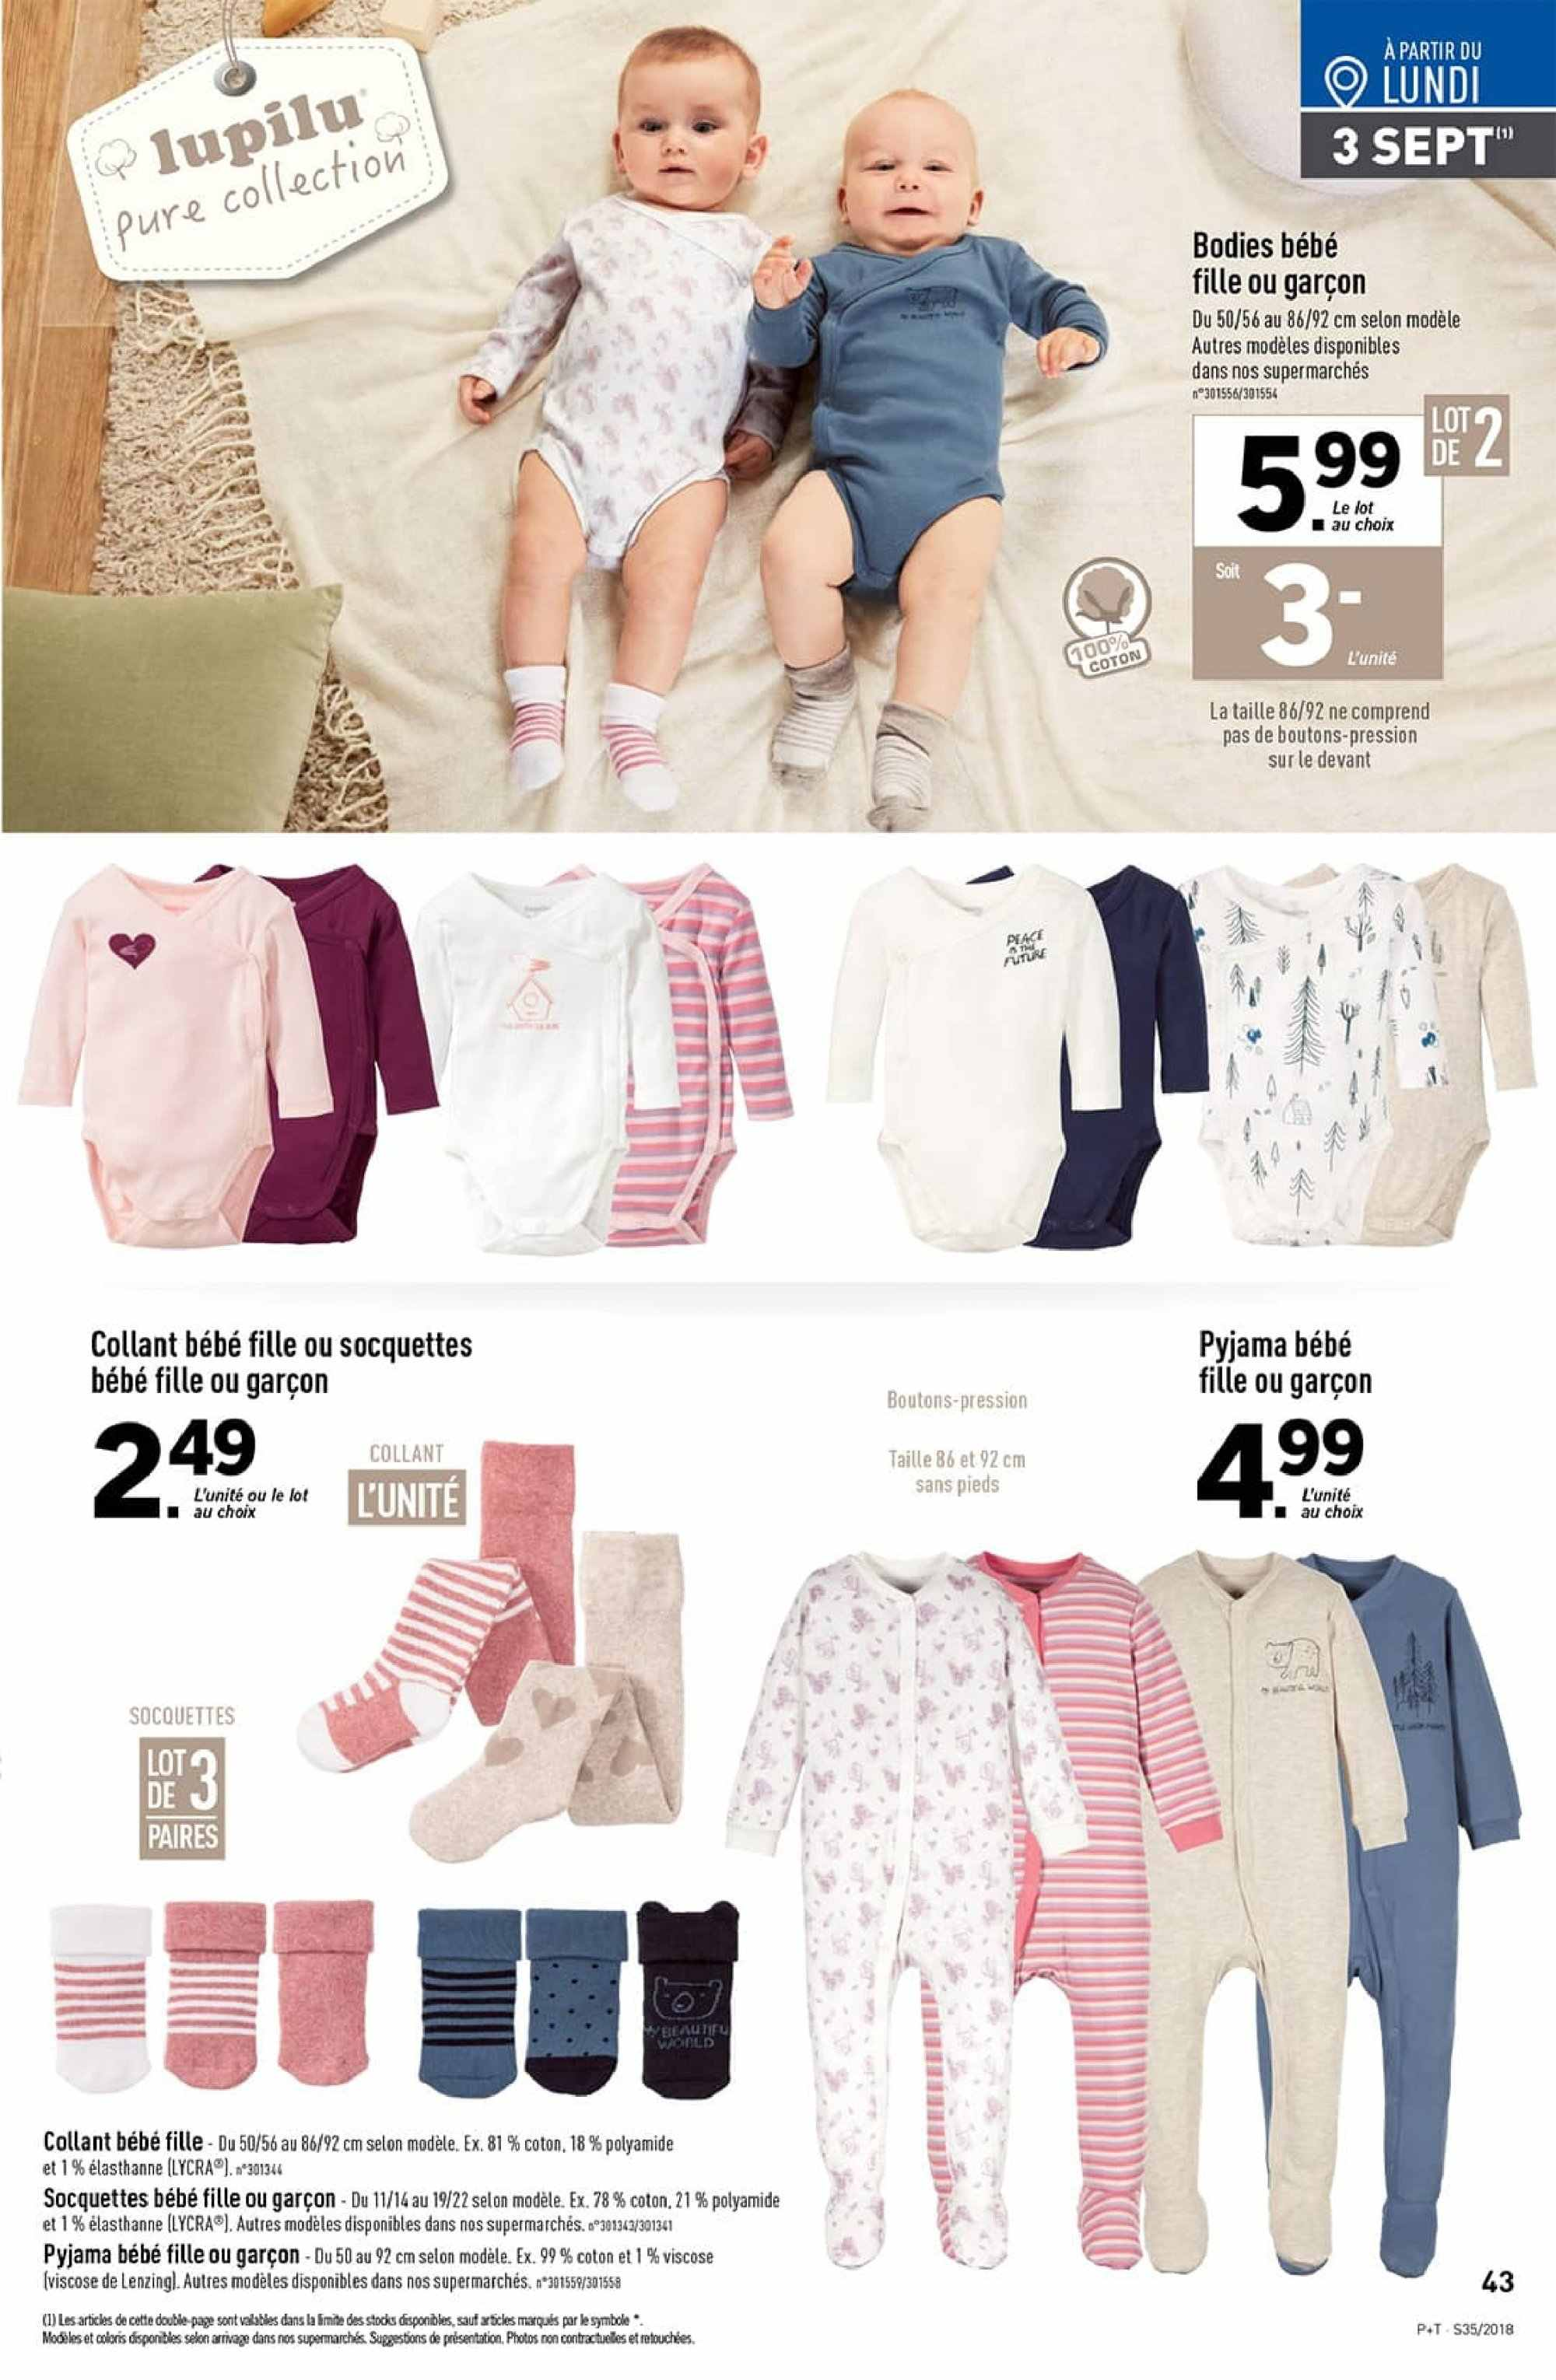 Catalogue Lidl - 29.08.2018 - 04.09.2018. Page 43.